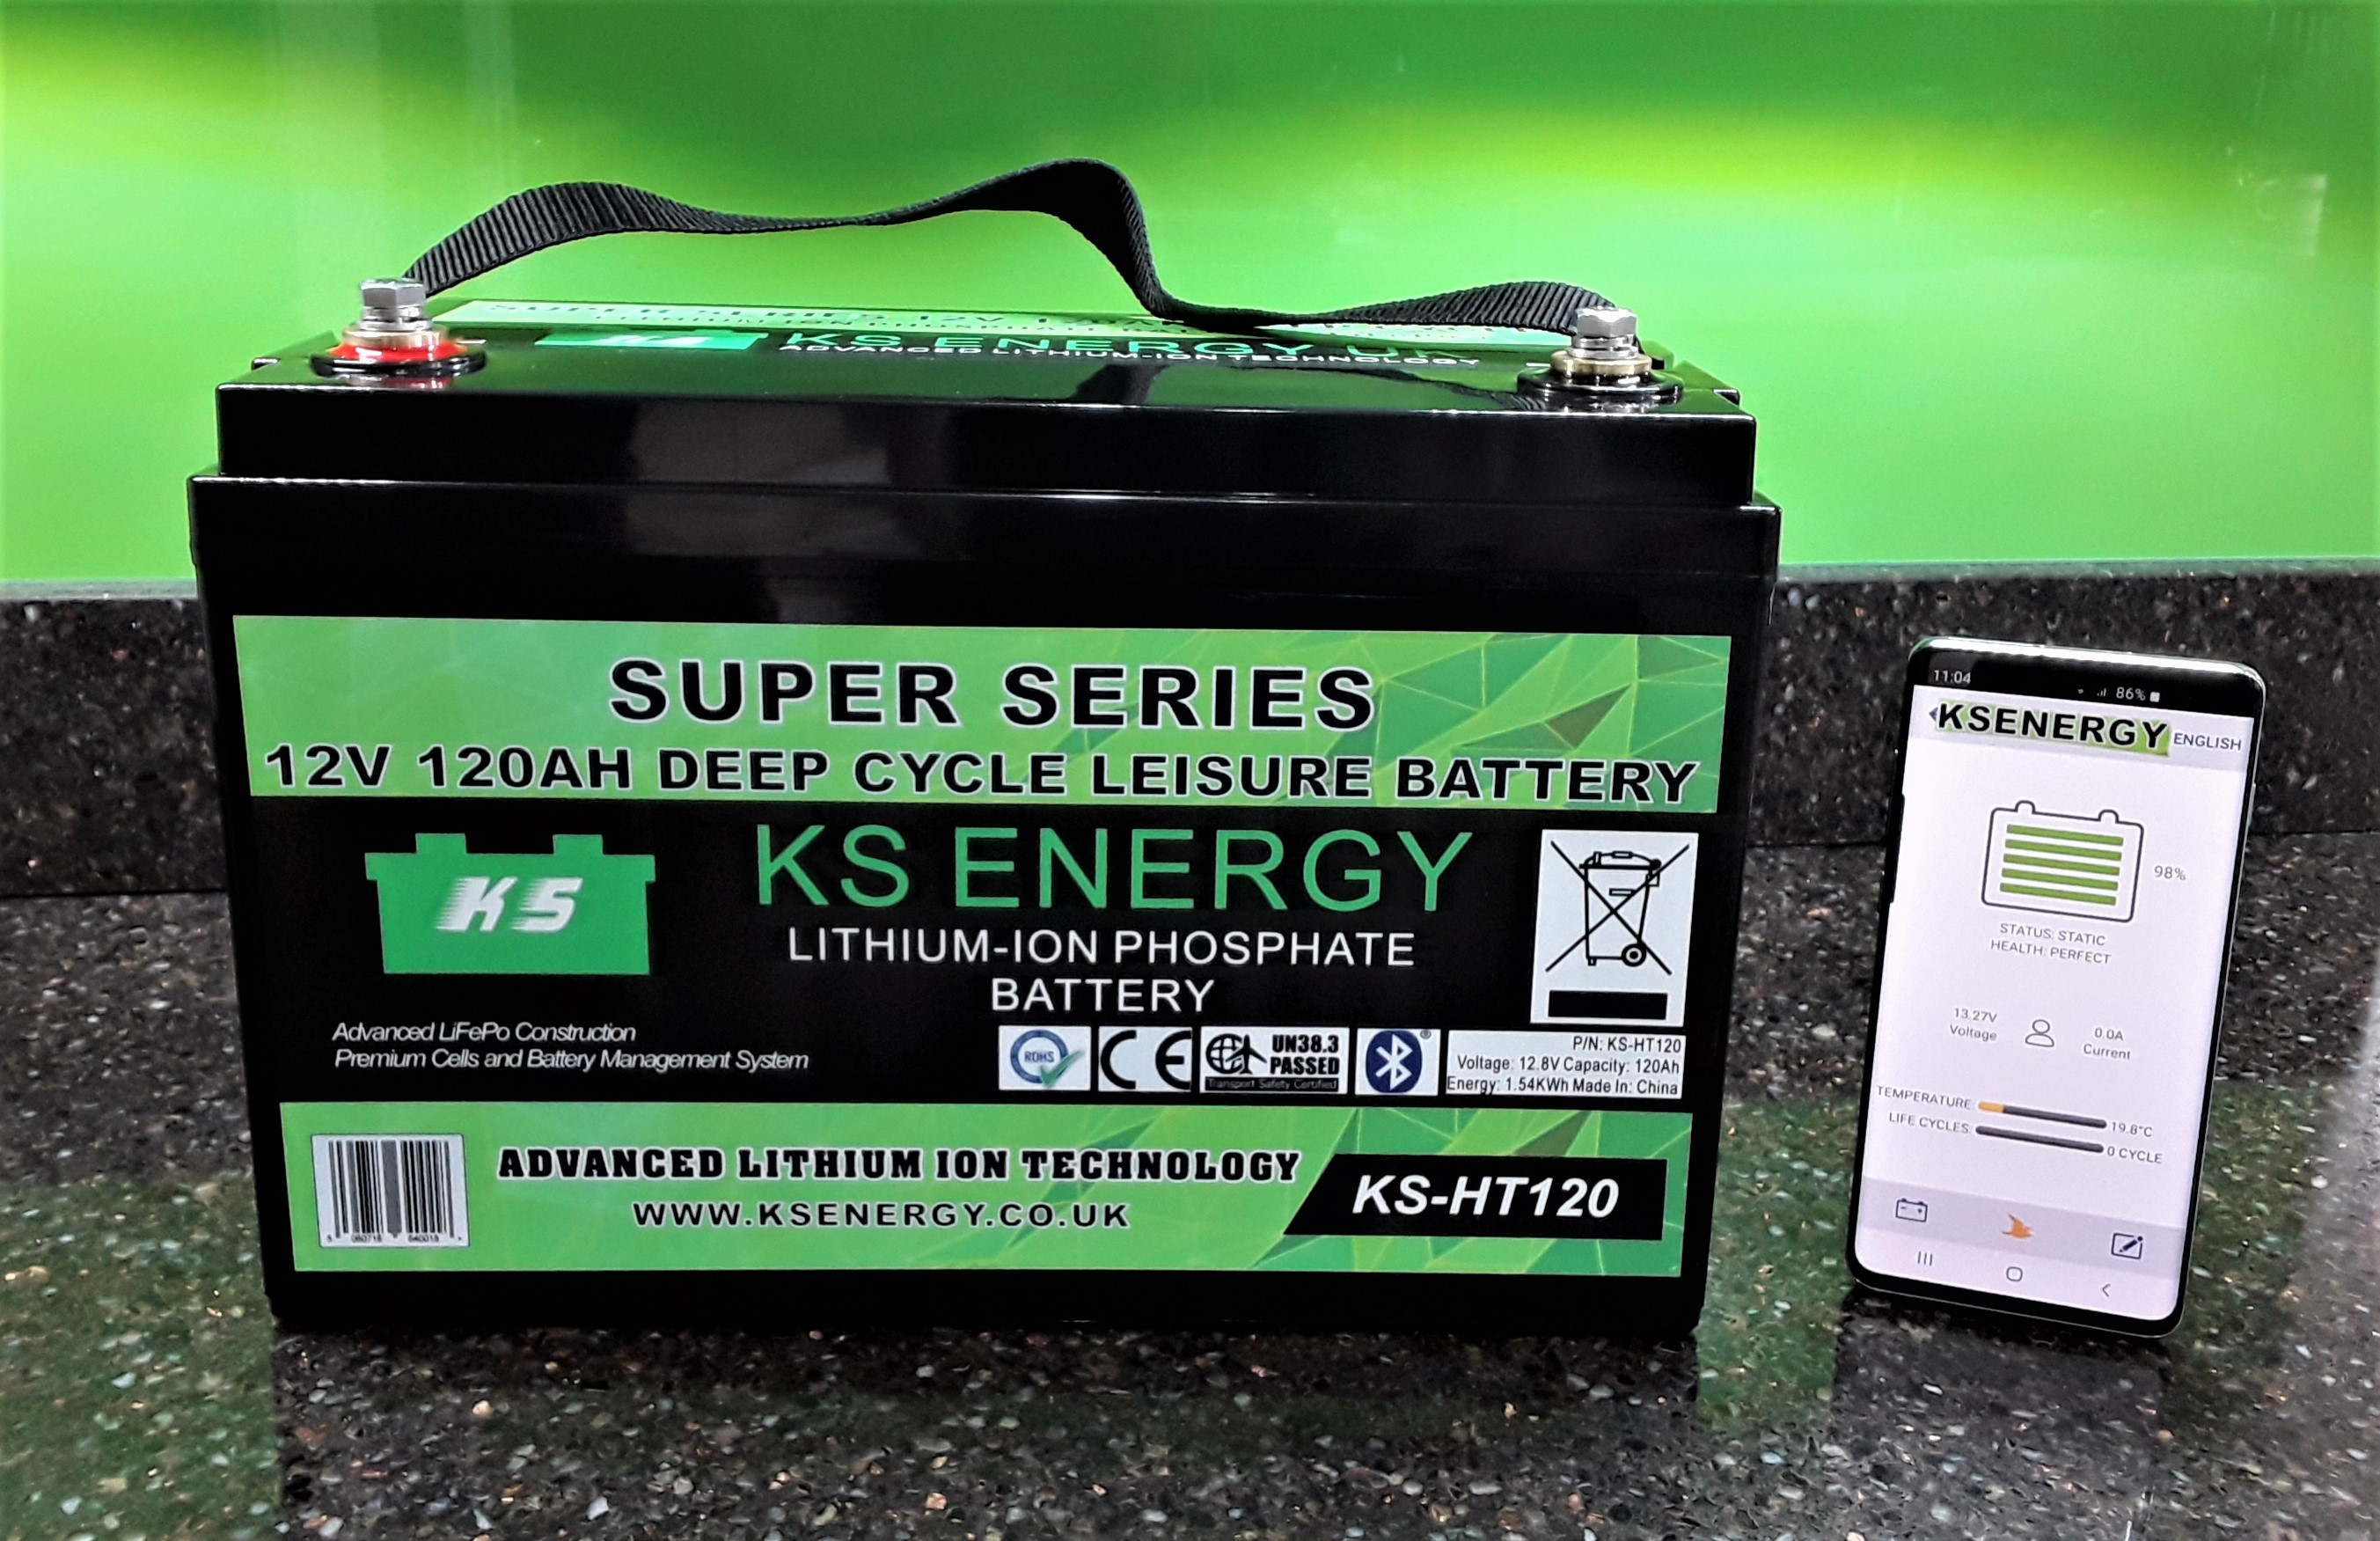 Our first Bluetooth High output low temperature protected 120AH compact leisure battery